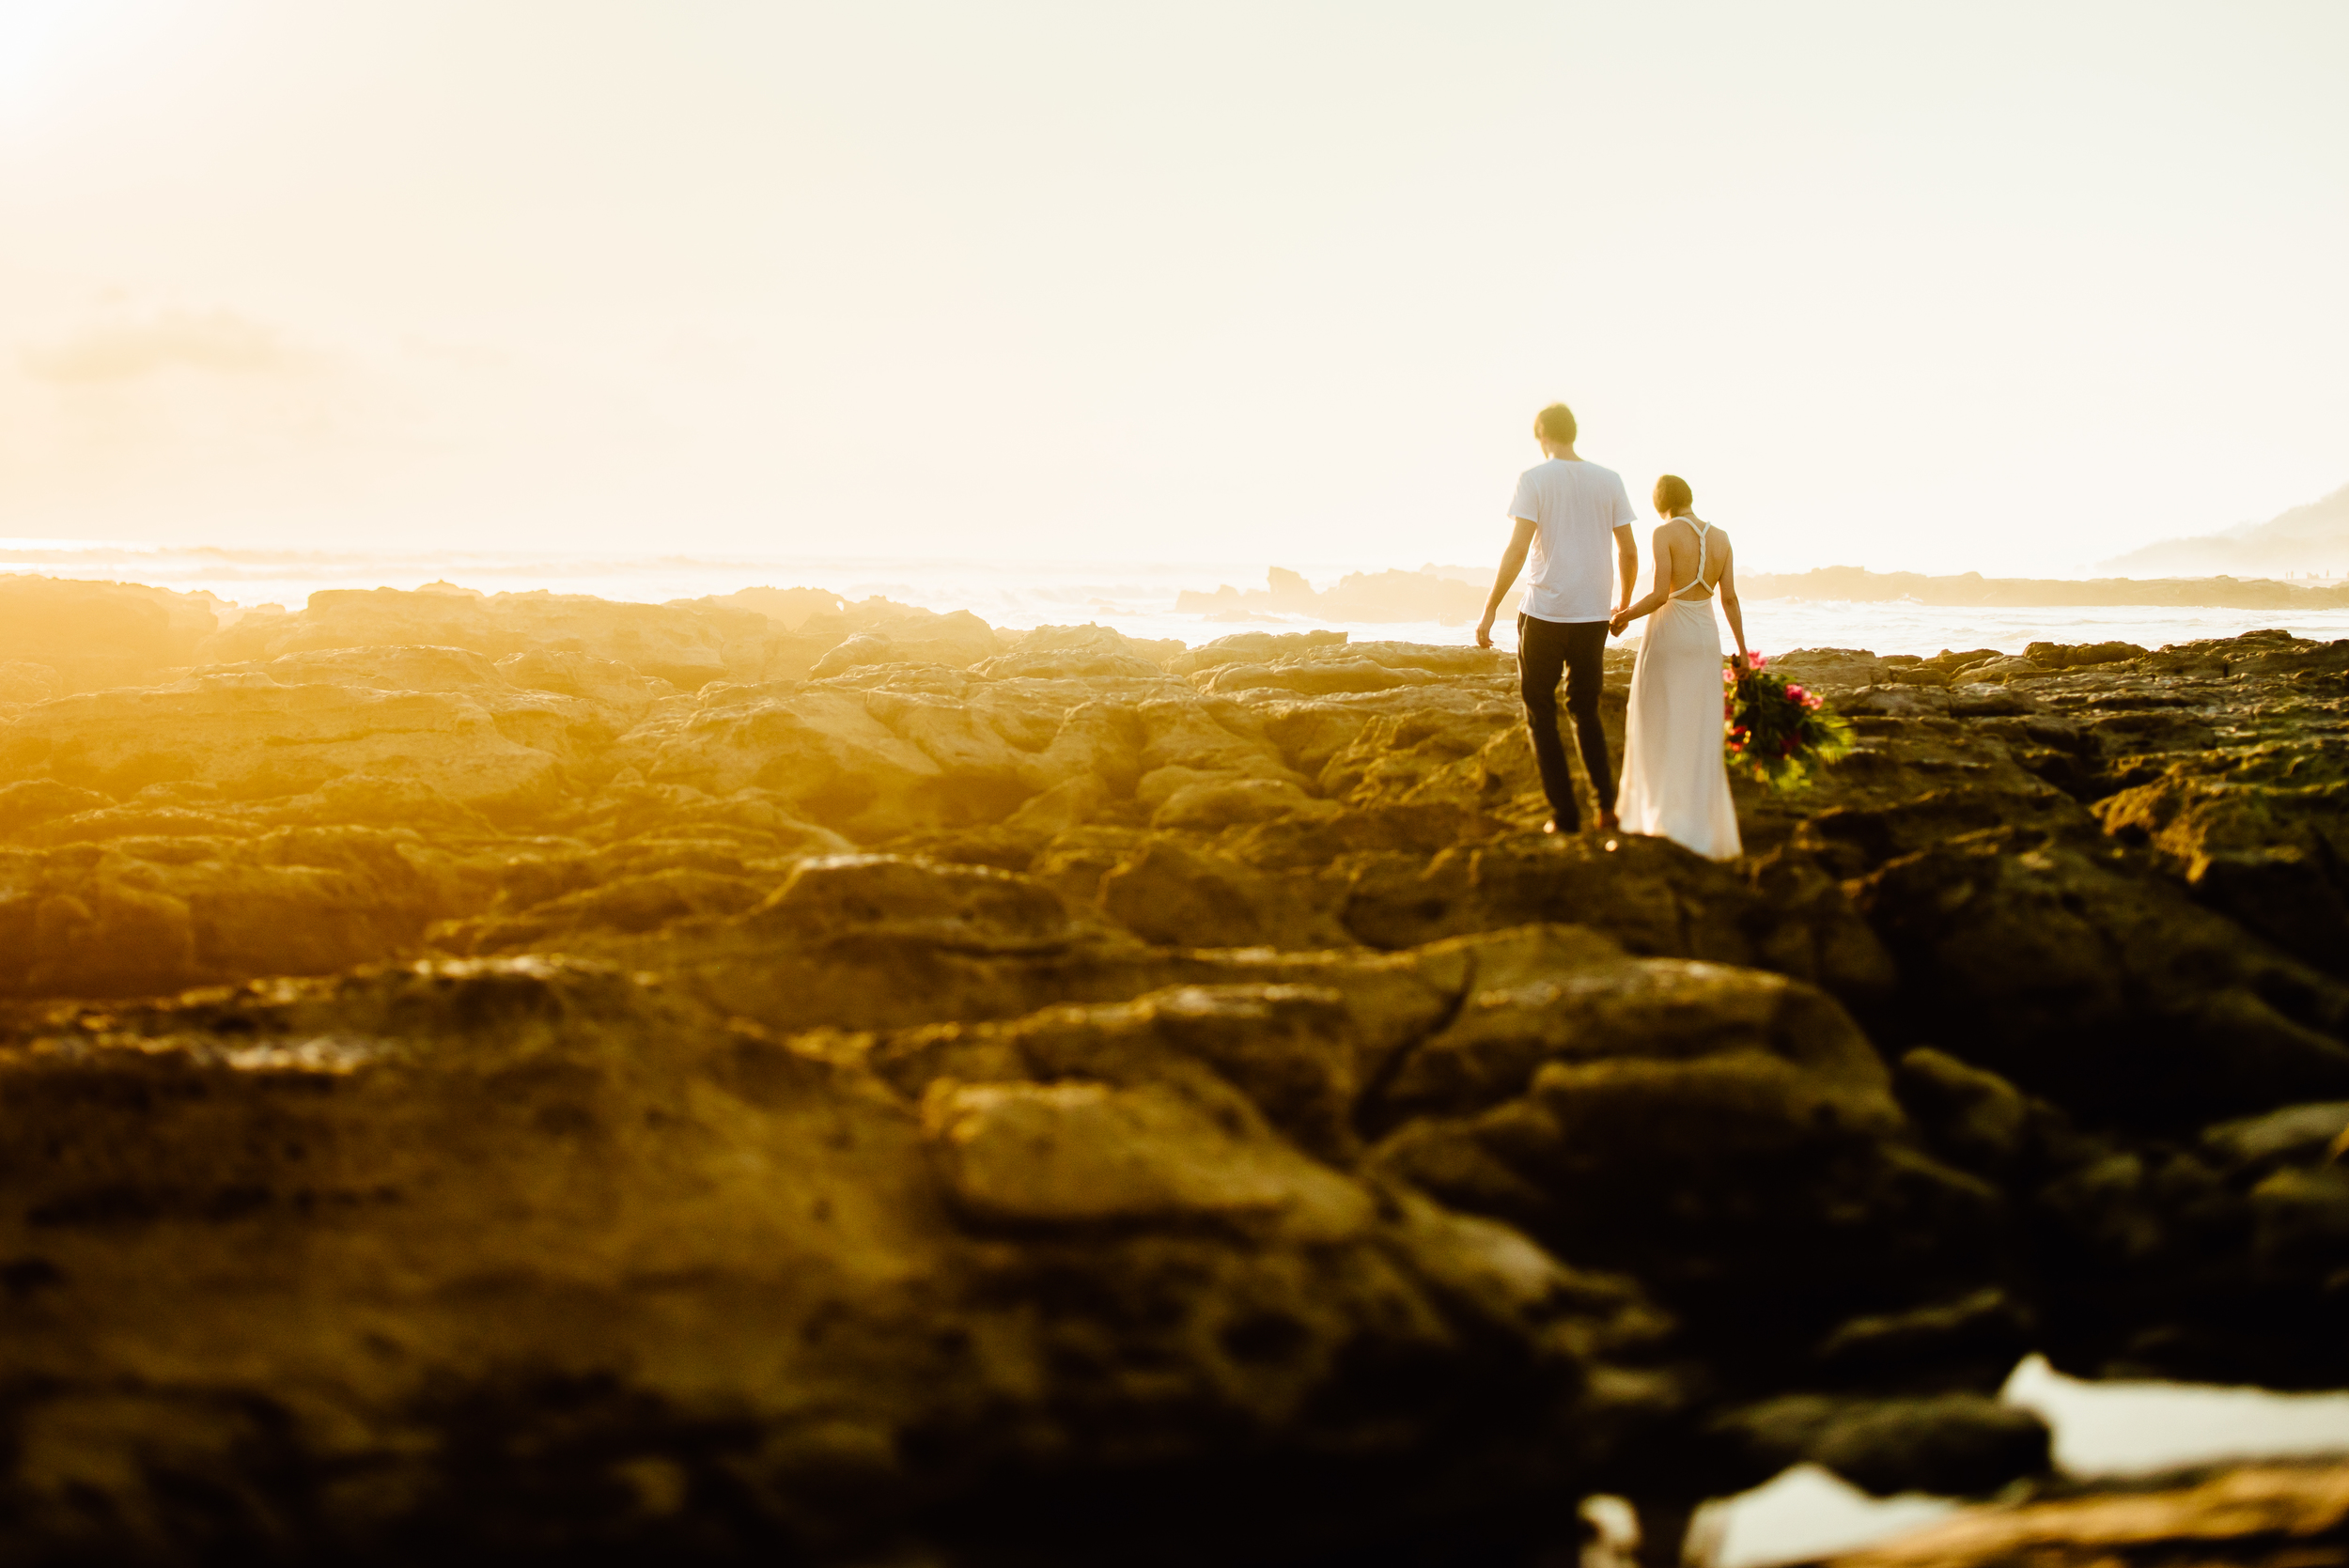 Everything aligned perfectly at this Costa Rica destination elopement photo session. The sunset on the Nicoya Peninsula is so amazing.   Costa Rica wedding photography by destination wedding photographer, Maddie Mae.